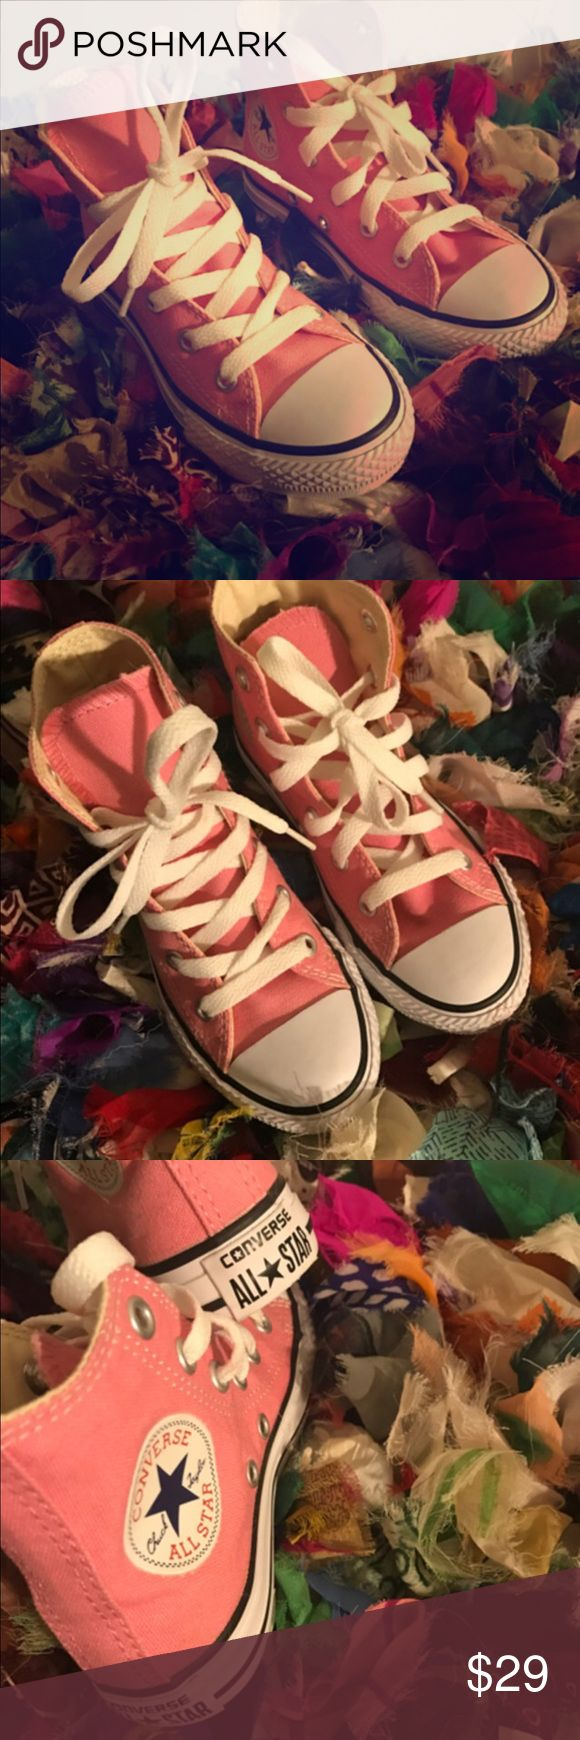 Pink high top converse (NWOT) BRAND NEW🚨 High top style constructed with a sturdy canvas upper lace-up closure, signature Chucks rubber cap toe offers protection and durability. Converse rubber outsole provides flexible traction. Converse Shoes Sneakers